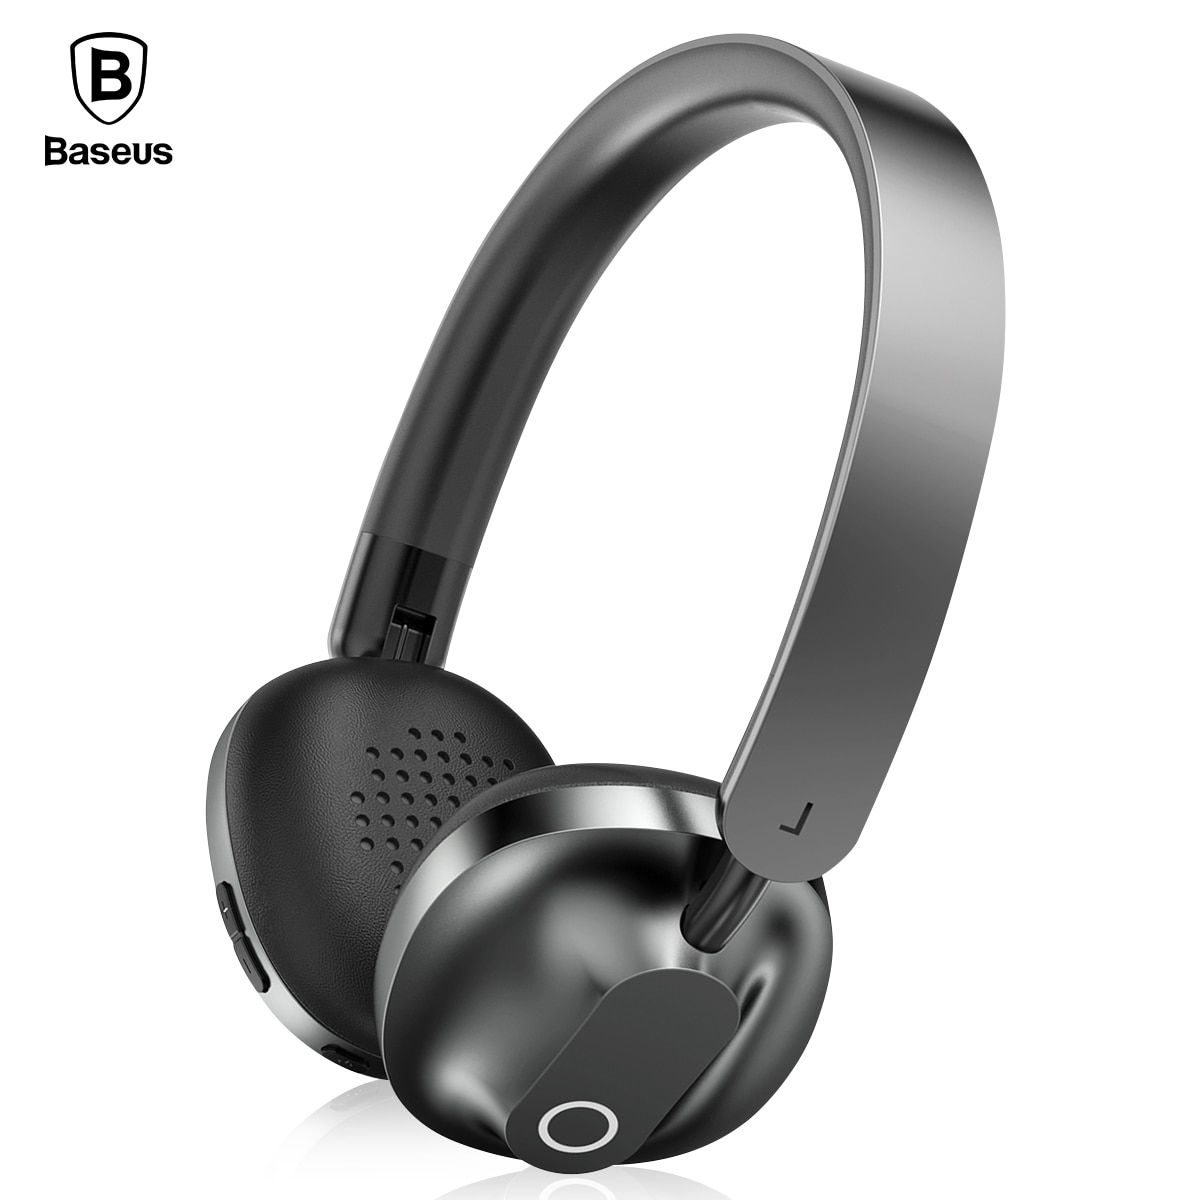 Baseus D01 Bluetooth Earphone Wireless Headphones With Mic Gaming Headset Stereo Auriculares Fone De Ouvido For Phones Computer